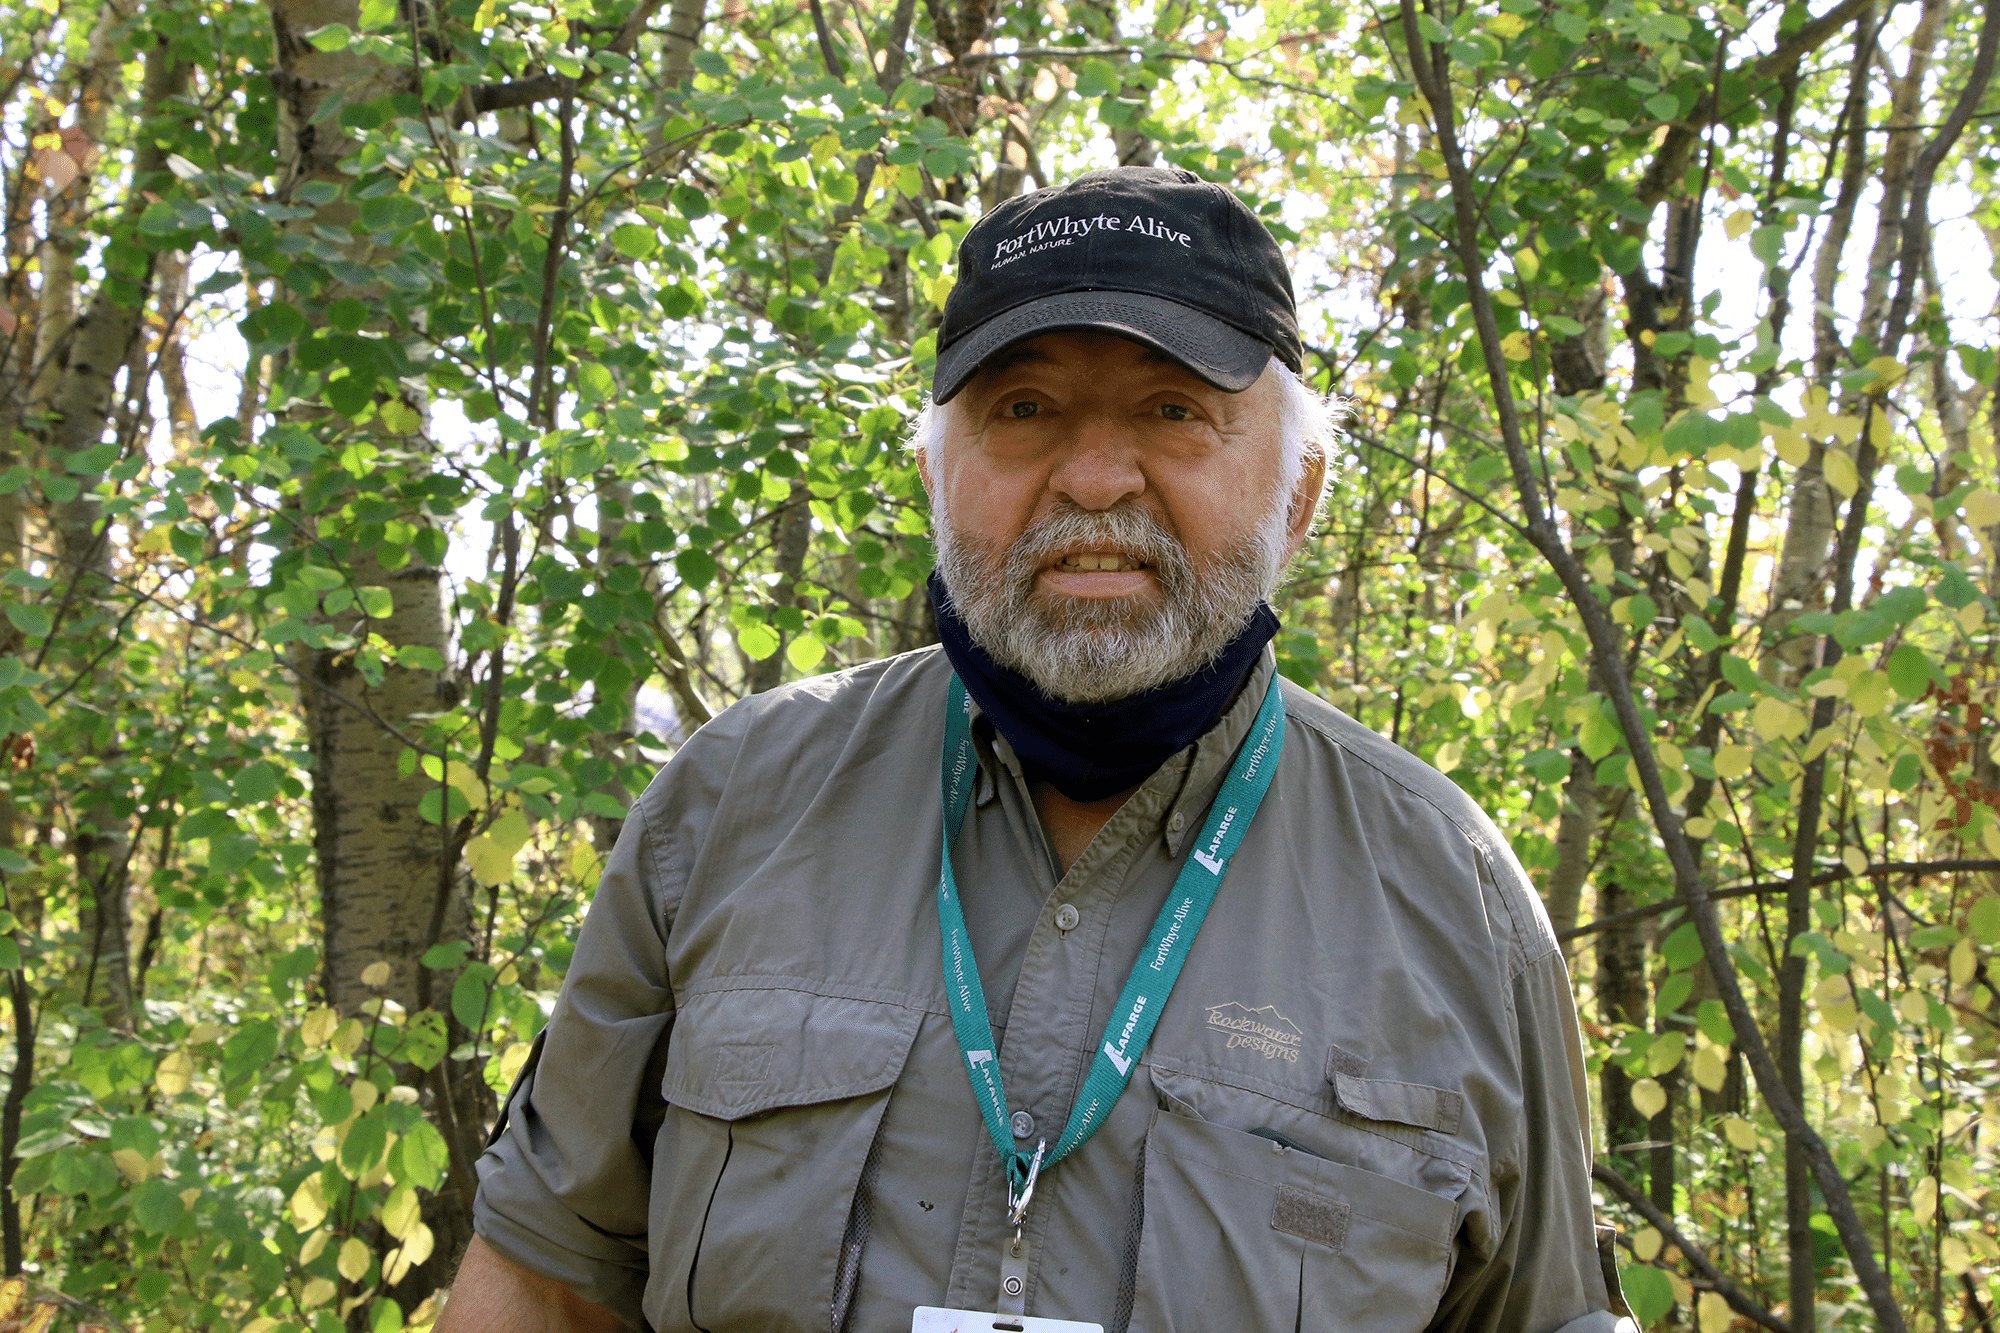 Keith wears his FortWhyte Alive Volunteer lanyard and smiles at the camera.